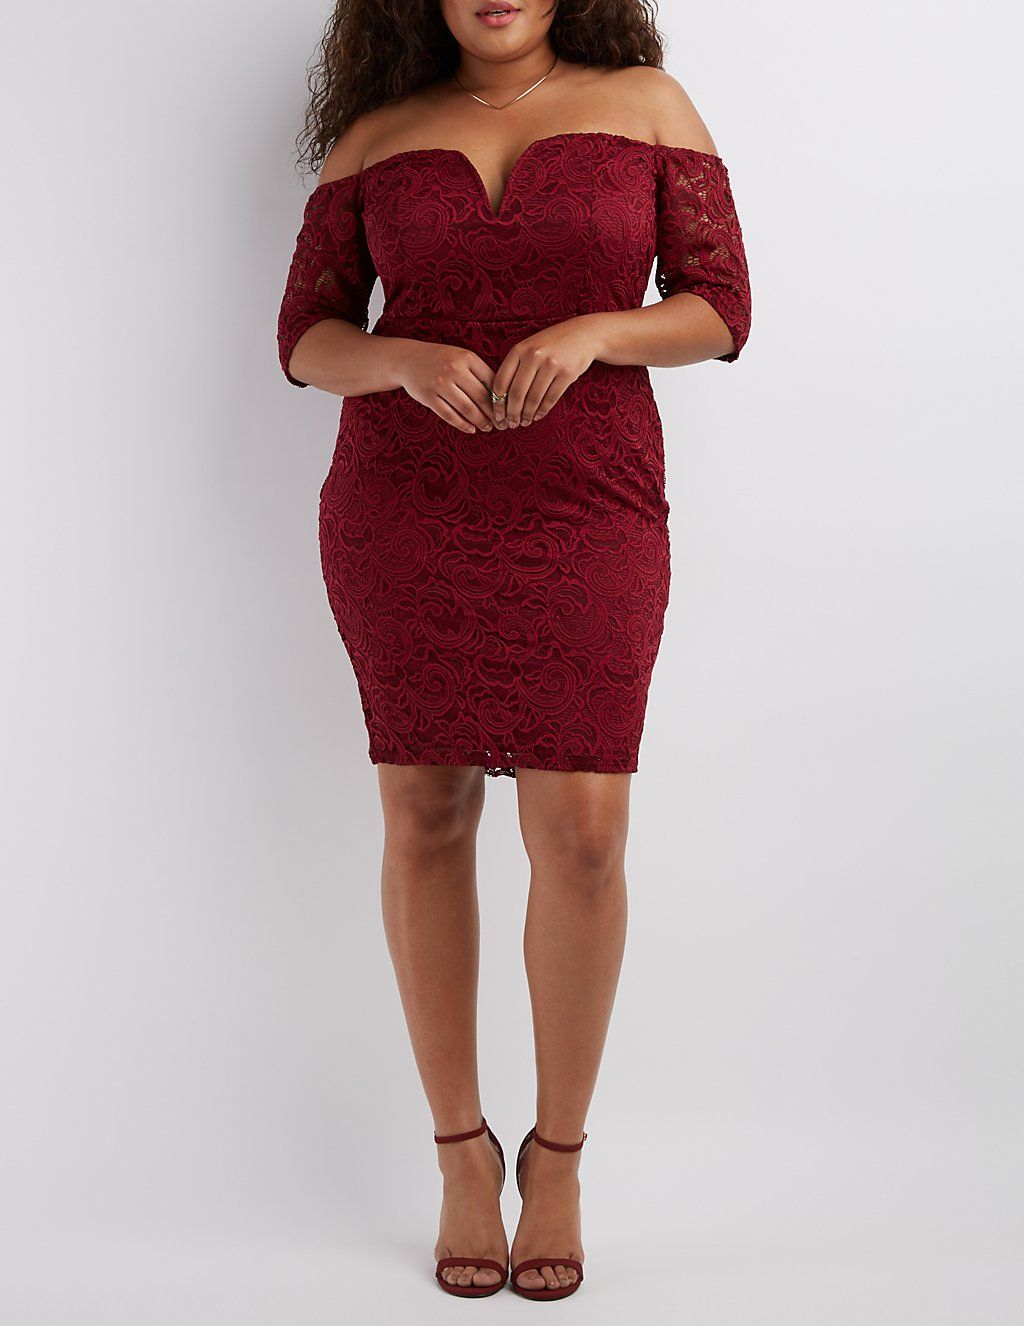 ddba2a013f Plus Size Lace Off-the-Shoulder Bodycon Dress | Charlotte Russe ...